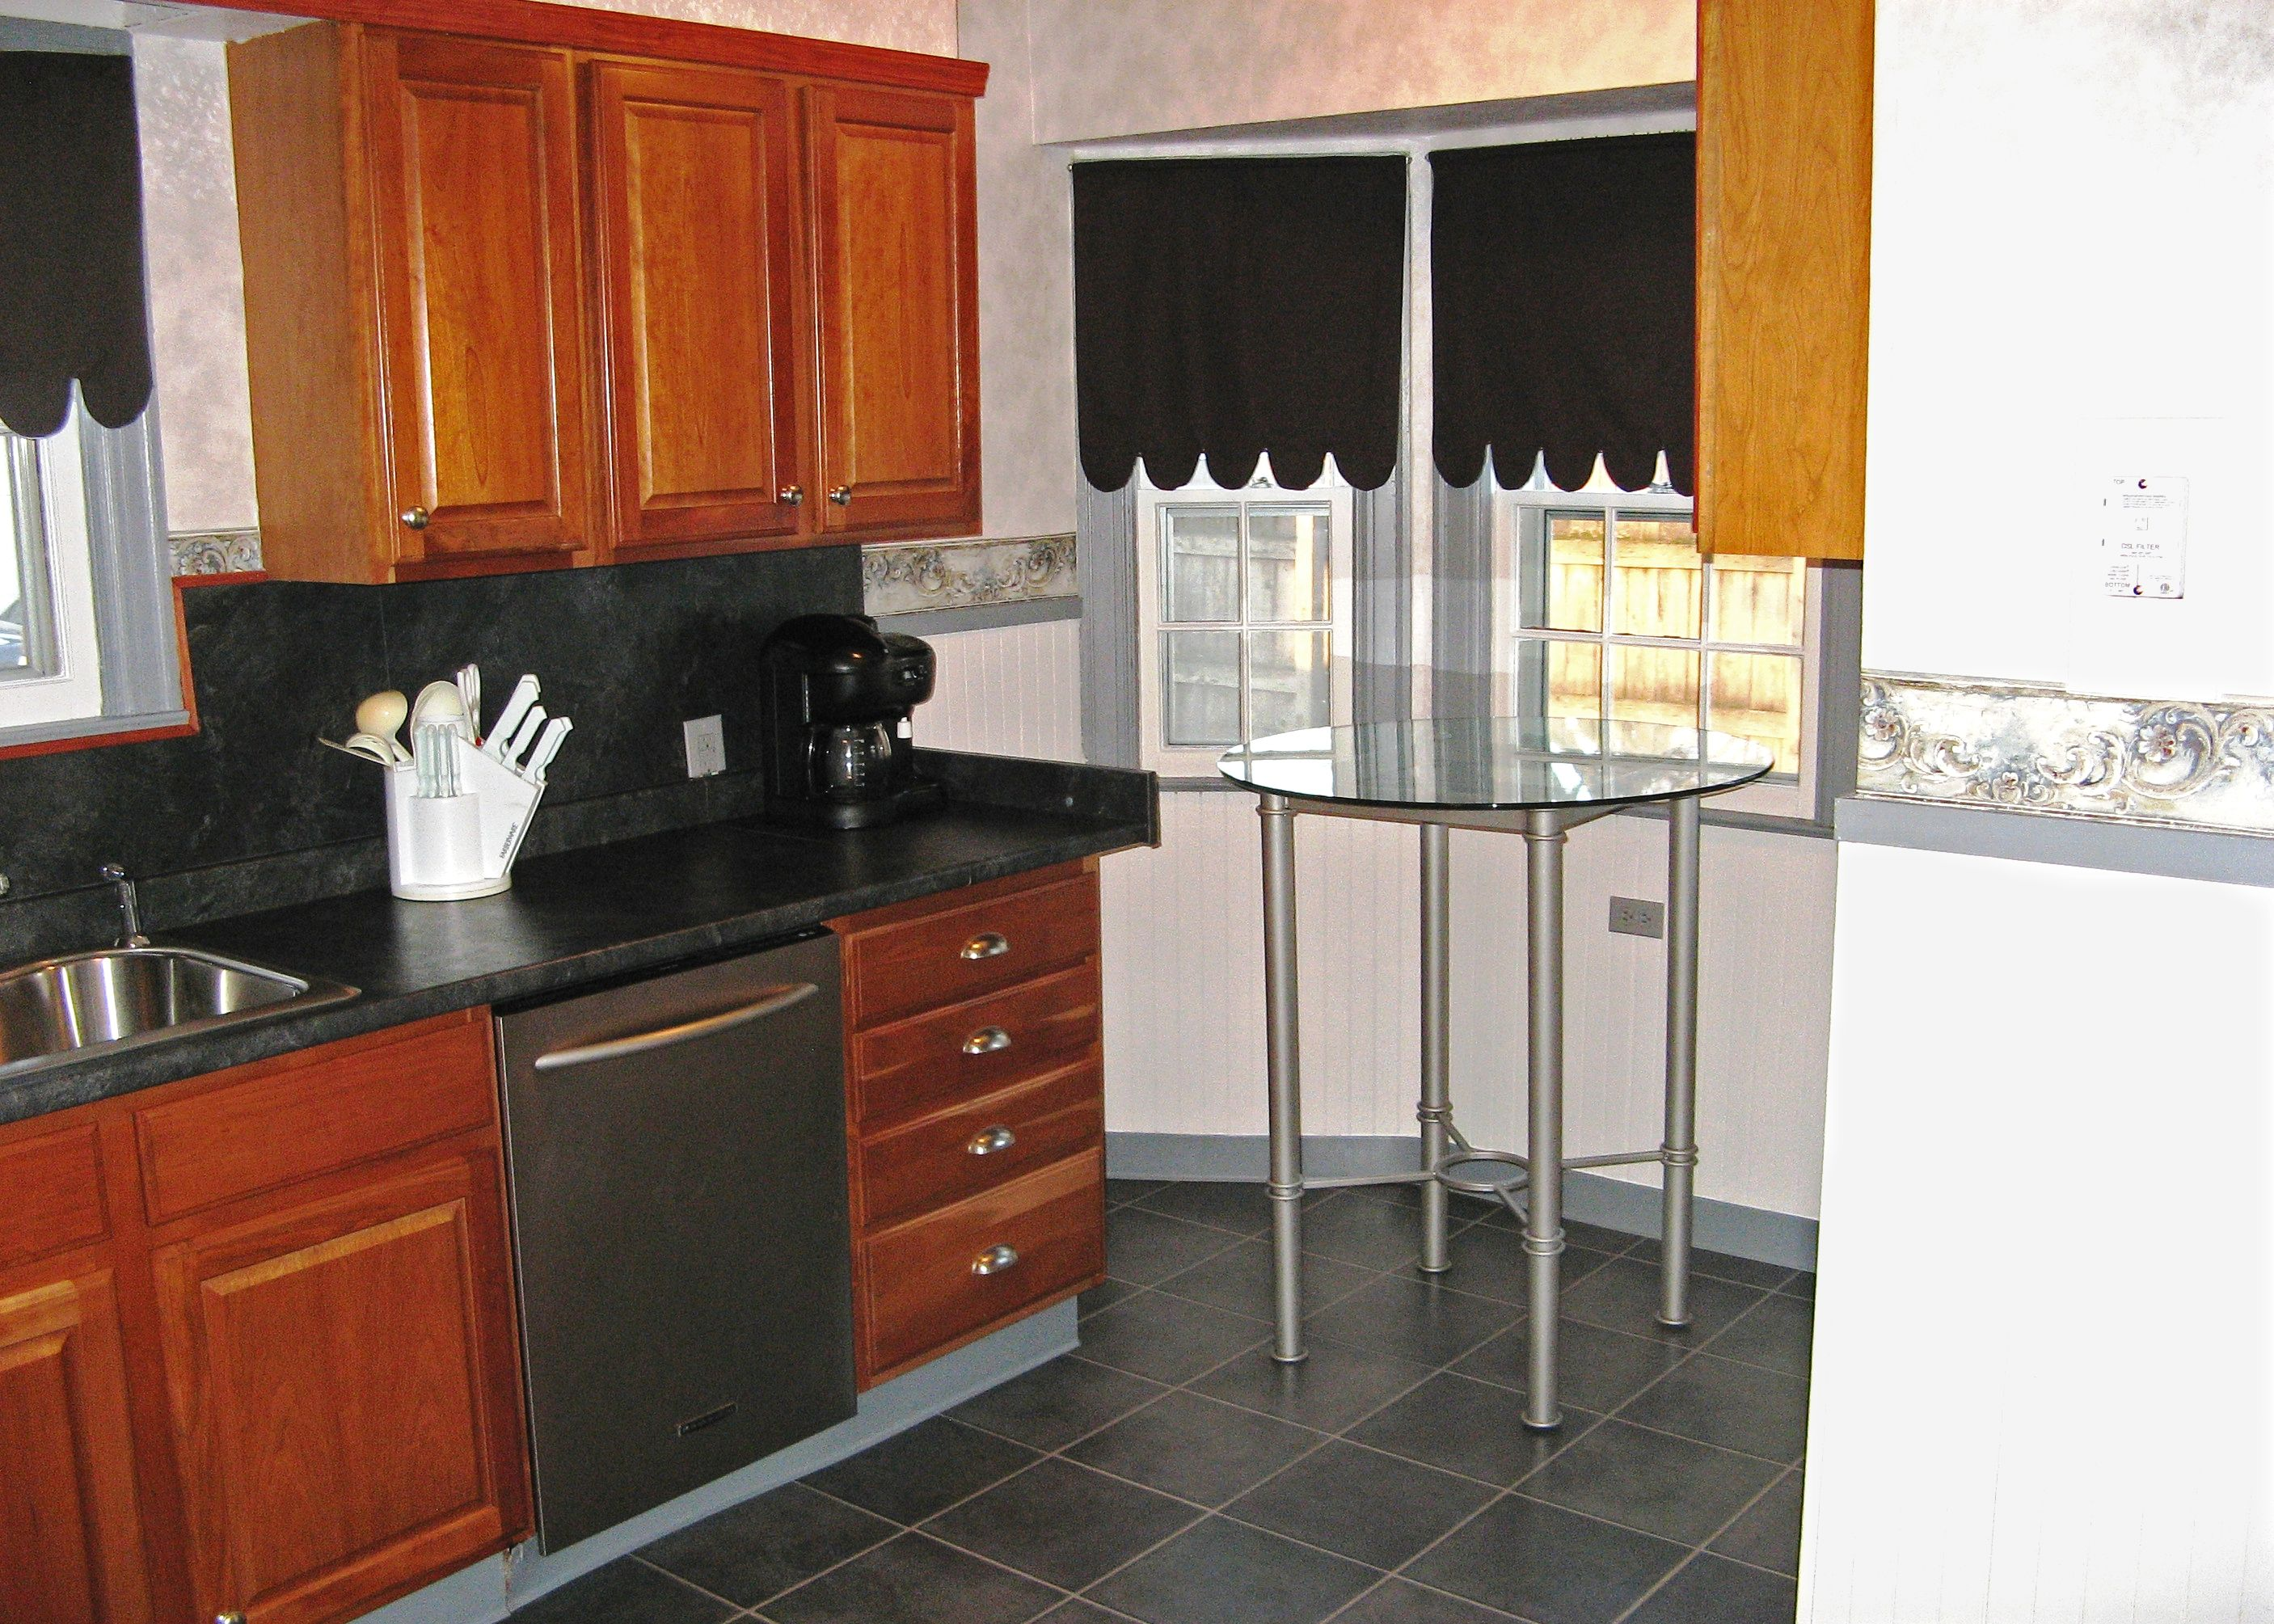 Pin By Amy Shepard On Hrs Kitchen Assist Program Free Kitchen Design Home Repair Services Kitchen Design